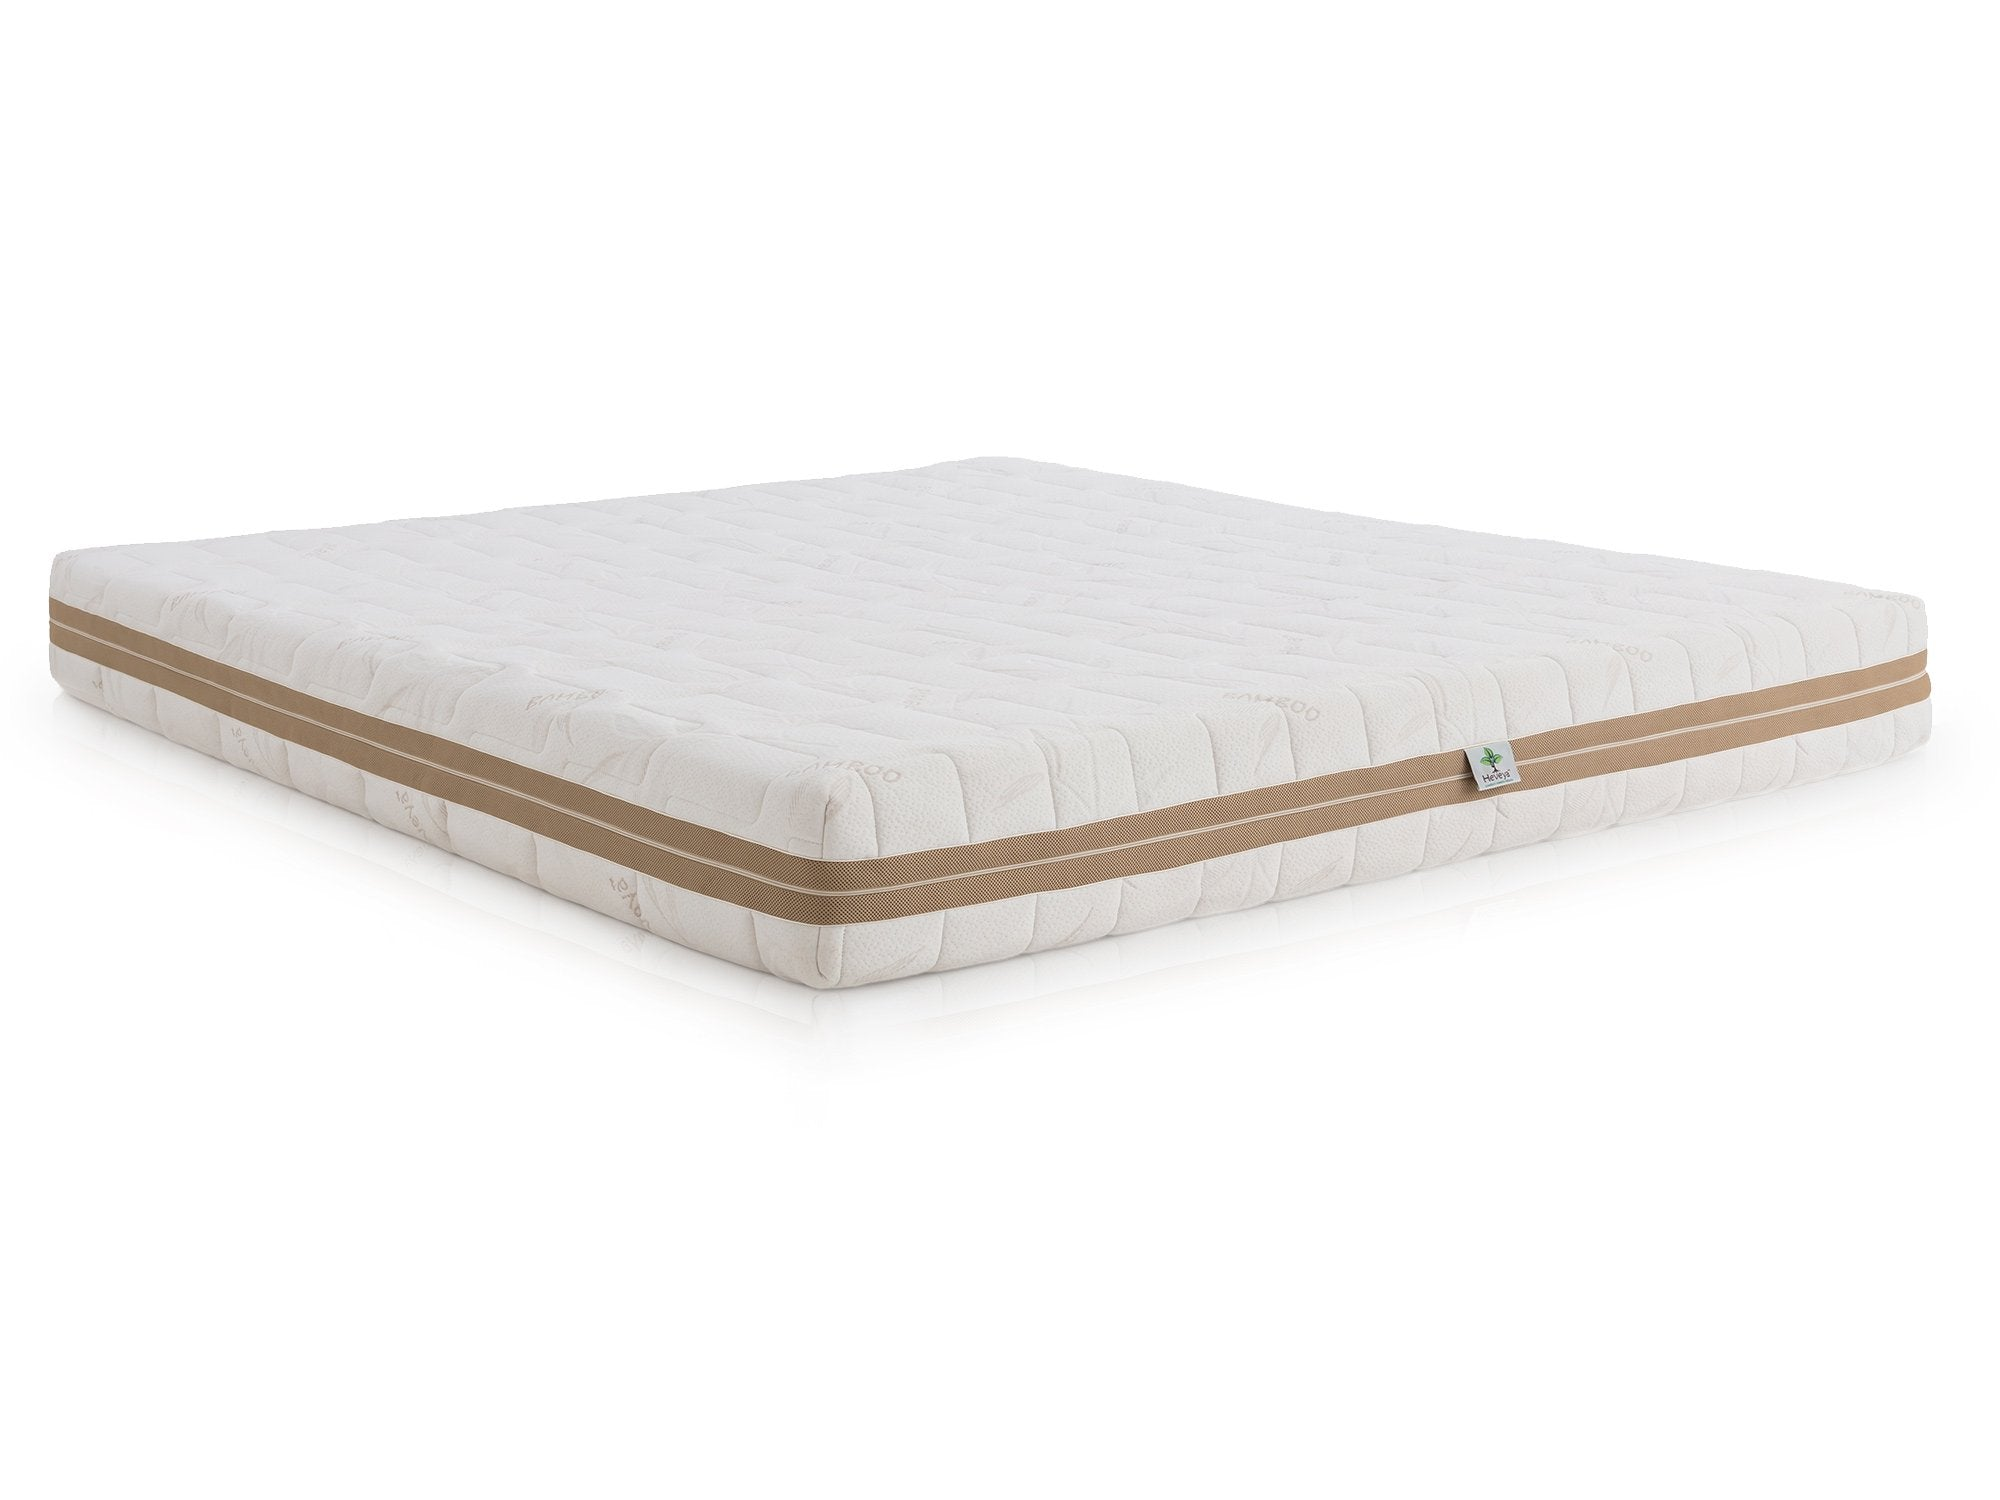 Heveya natural organic latex mattress I